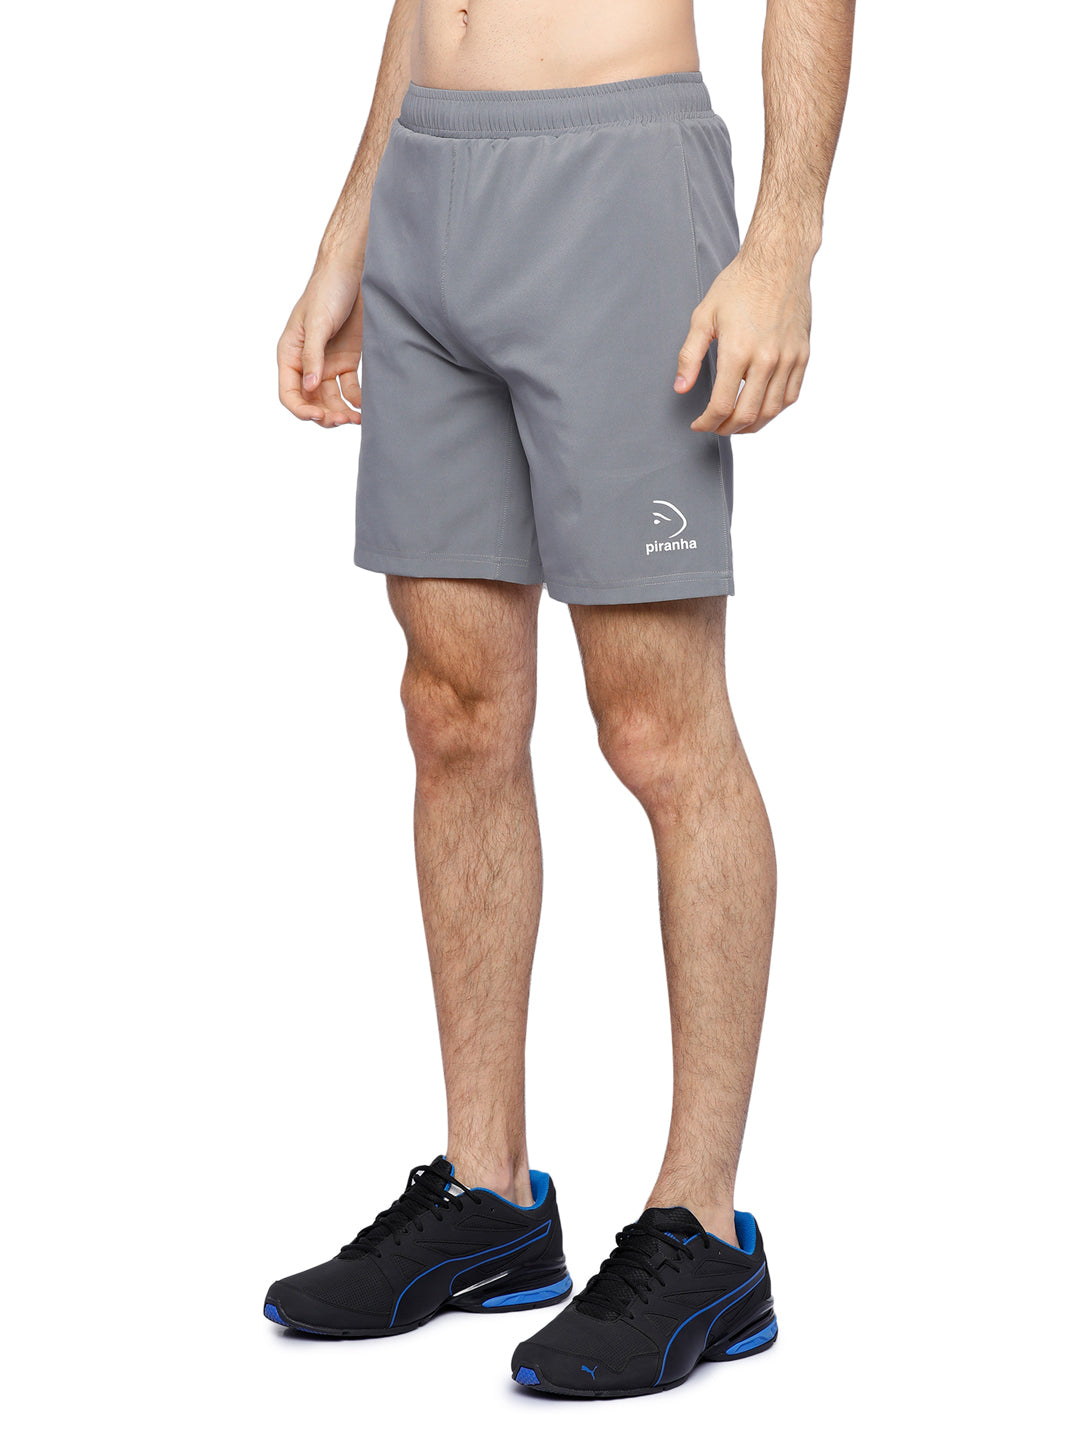 Piranha Men's Grey Shorts - S169